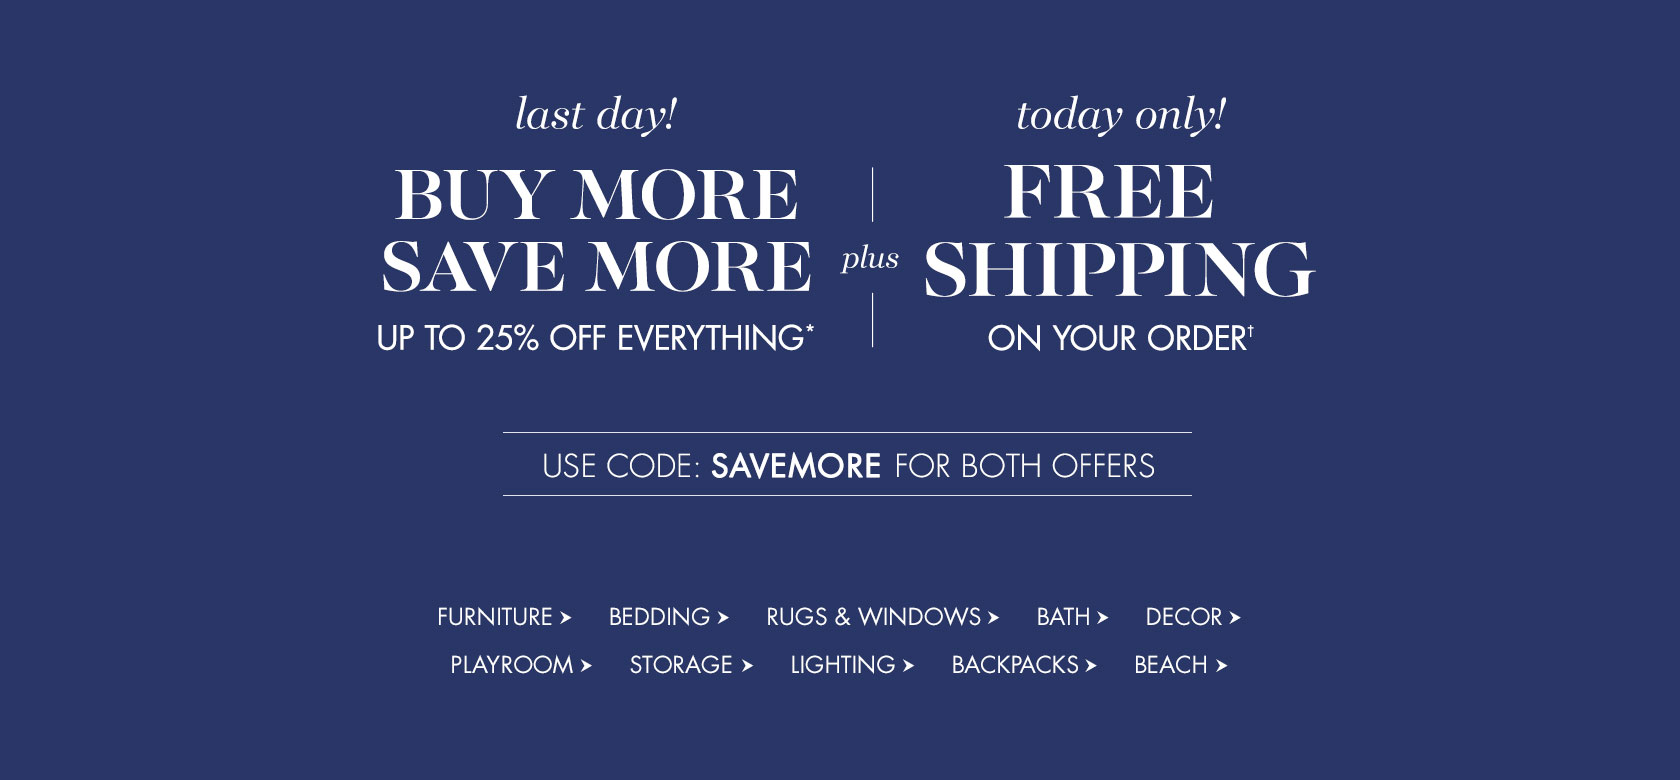 Buy More Save More + Free Shipping